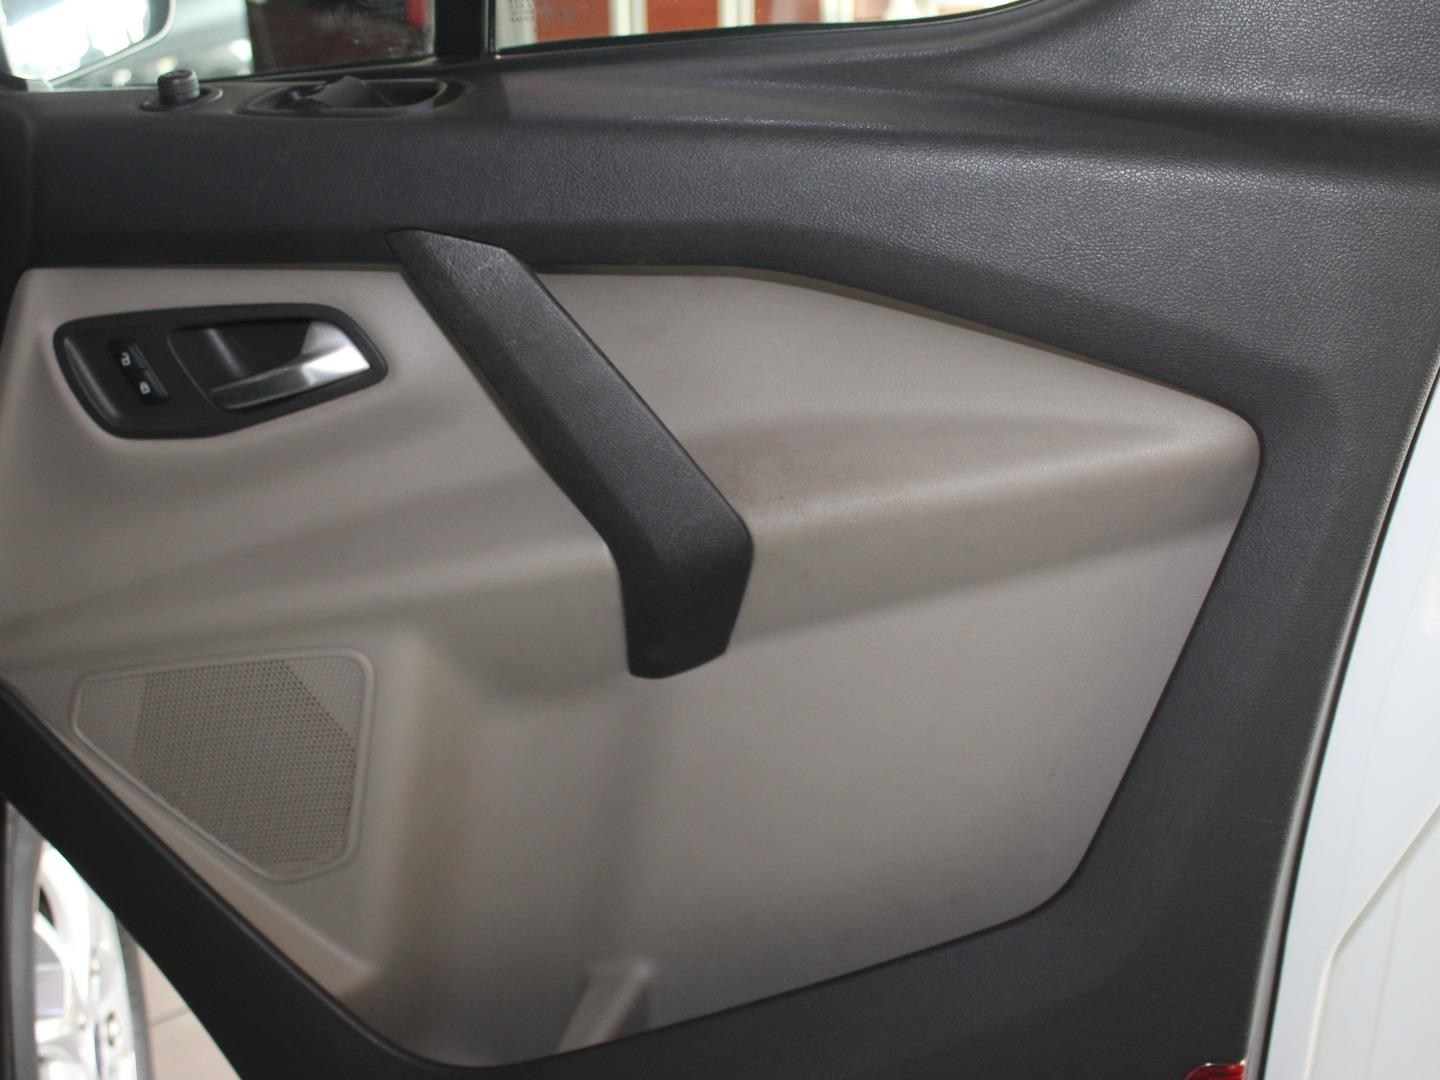 2013 Ford Tourneo Custom 2.2TDCi LWB Trend- Picture 4